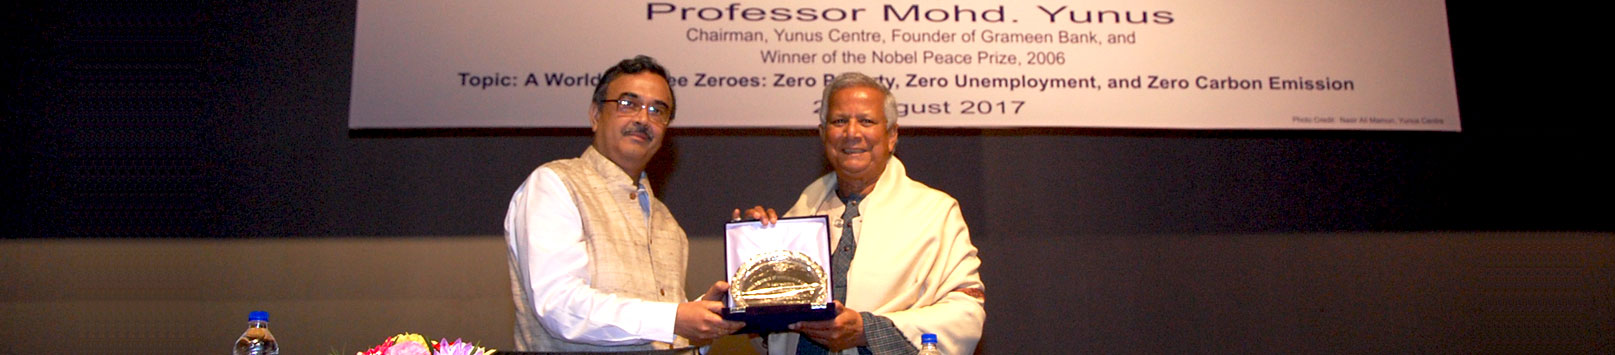 Prof. Saibal Chattopadhyay, Director IIM Calcutta greets Prof. Mohd. Yunus, winner of the Nobel Peace Prize 2006, prior to delivery of the Arijit Mukherji Memorial Lecture 2017.